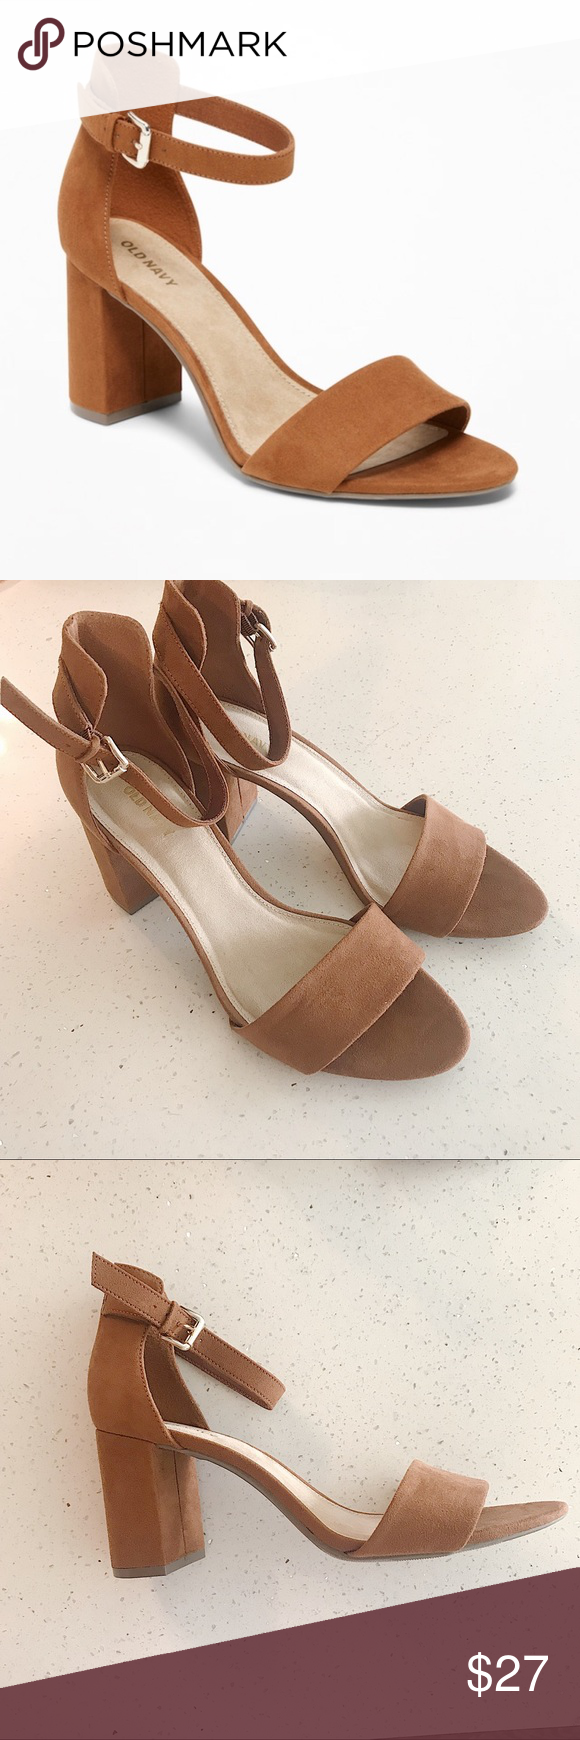 6d5e4eda1641 Old Navy Faux-Suede Block-Heel Sandals for Women Smooth